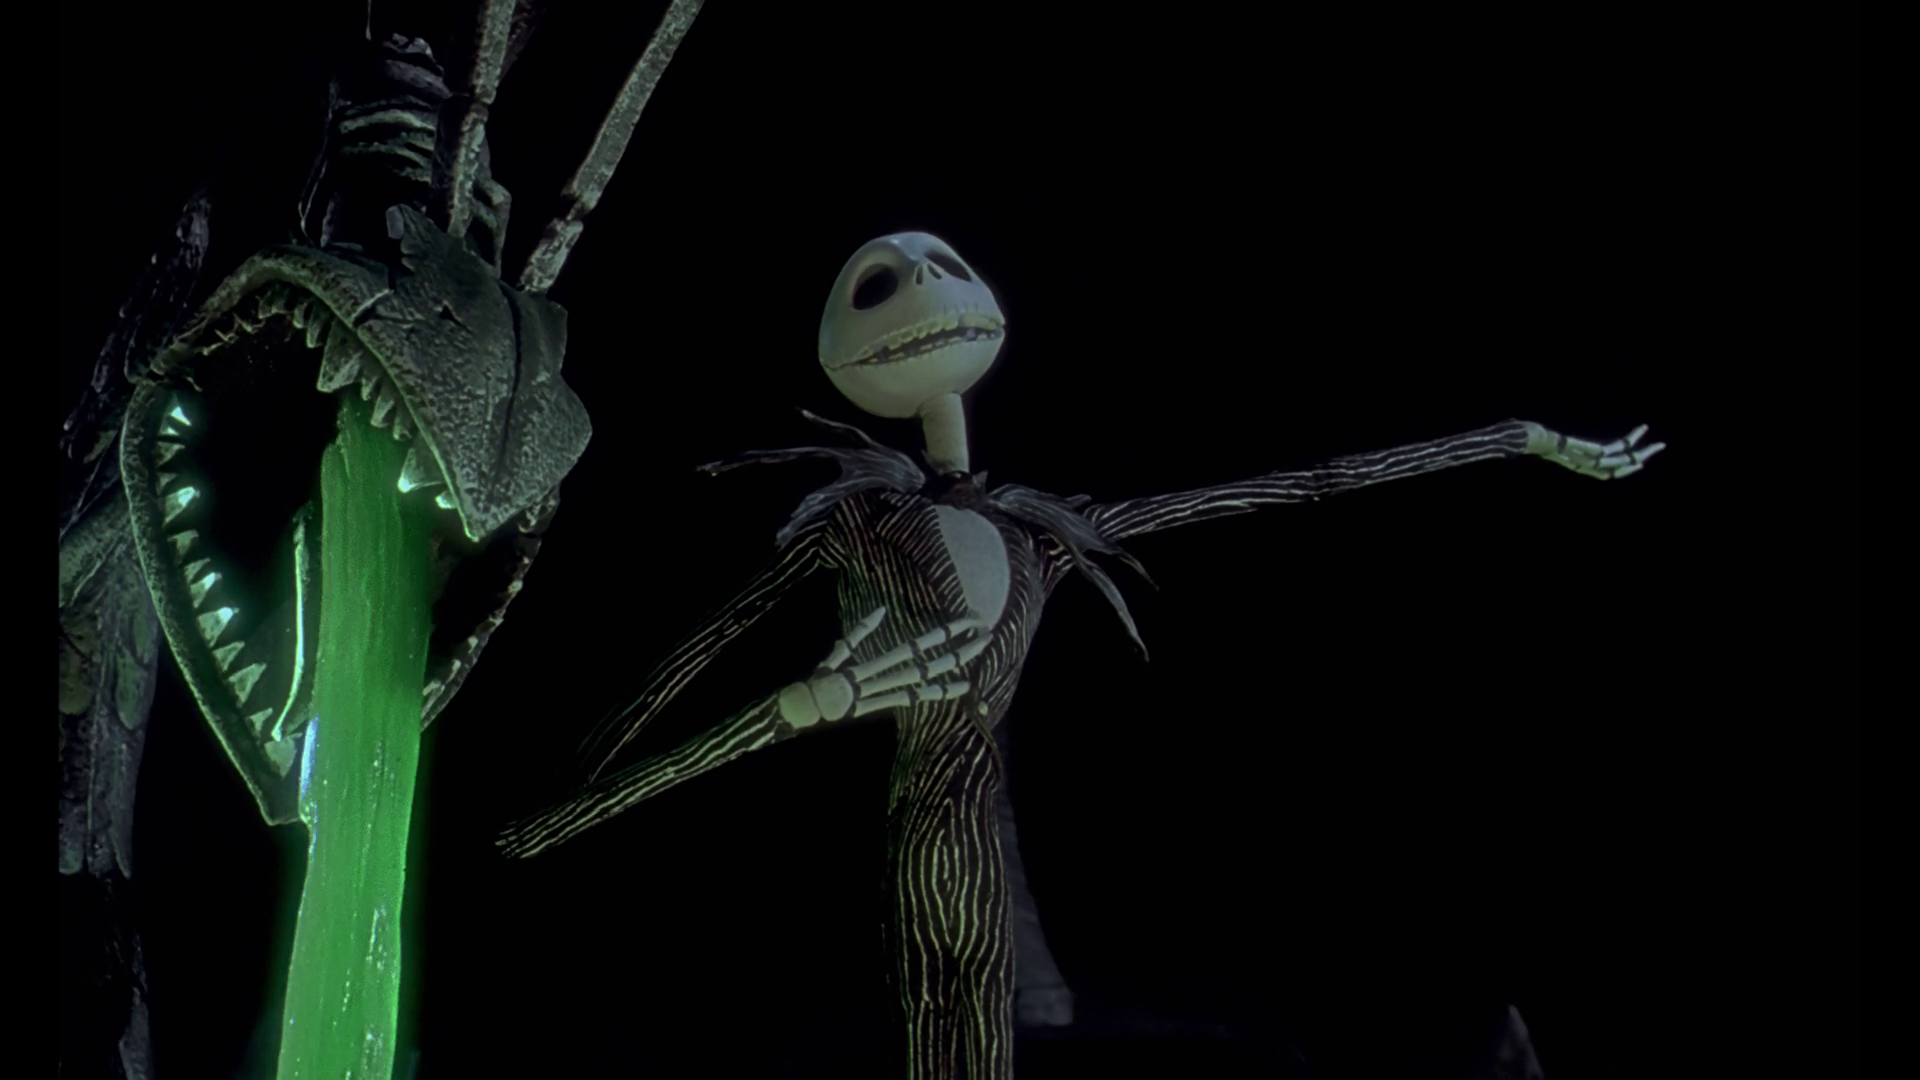 Nightmare Before Christmas images Nightmare Before Christmas HD ...